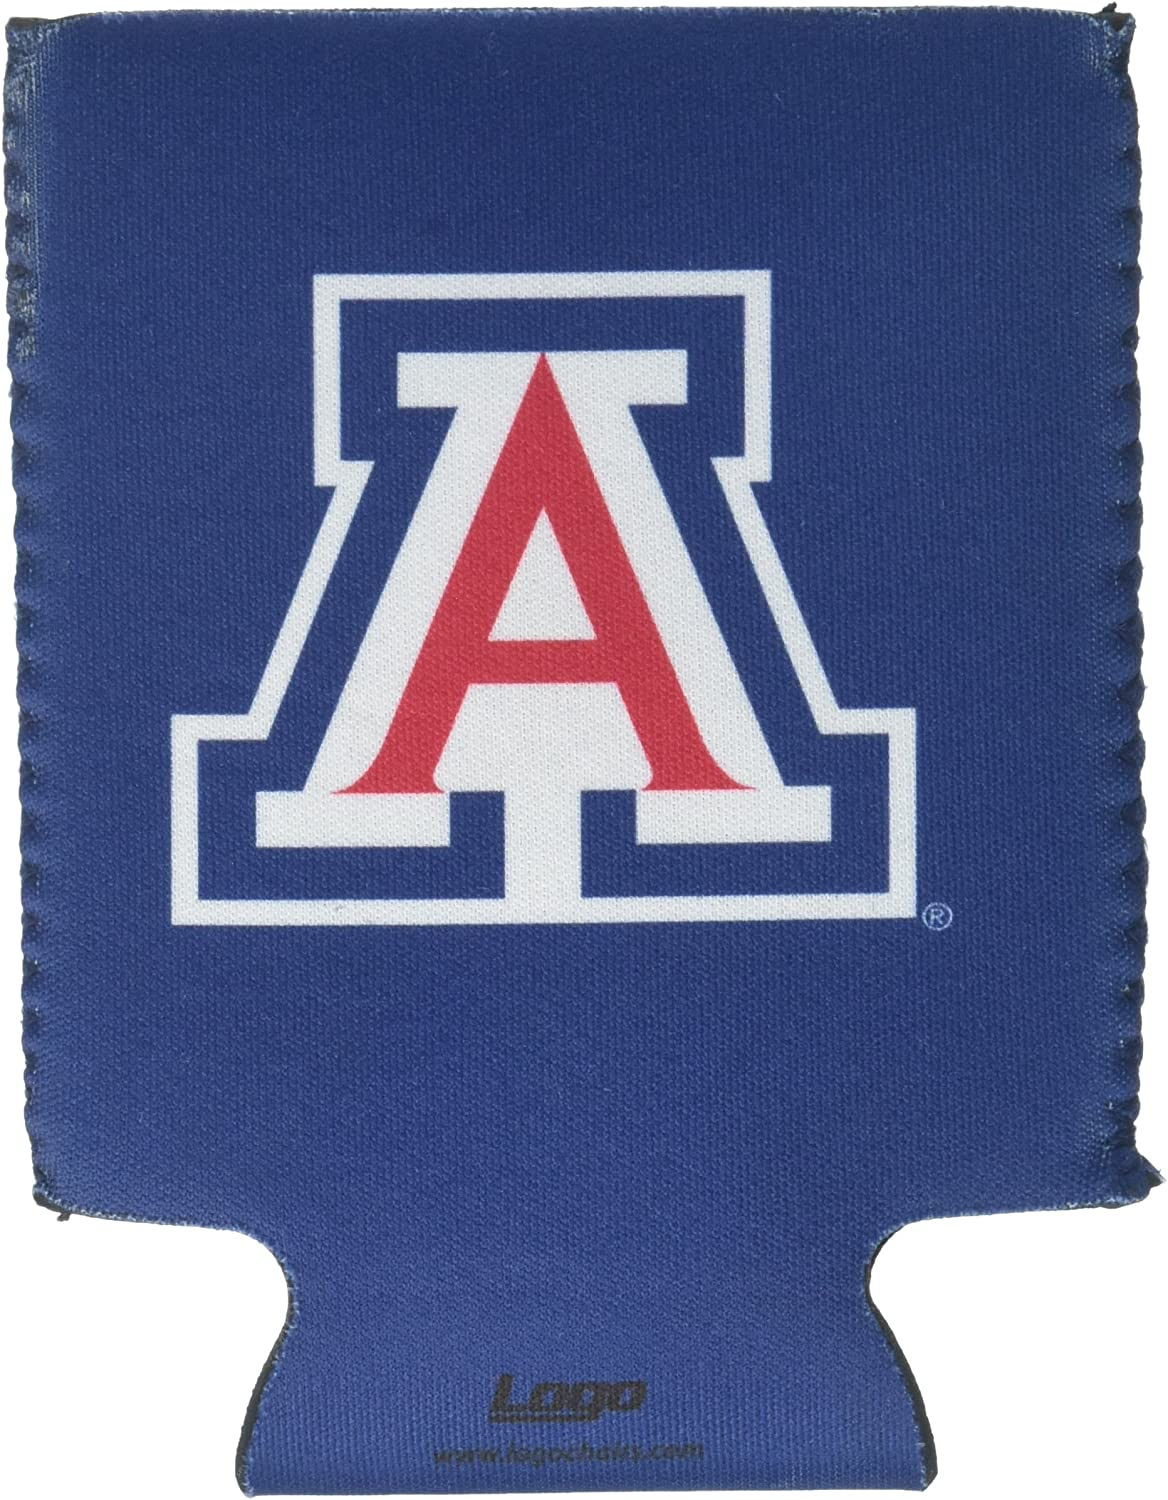 Logo Brands Officially Licensed NCAA Flat Coozie, One Size